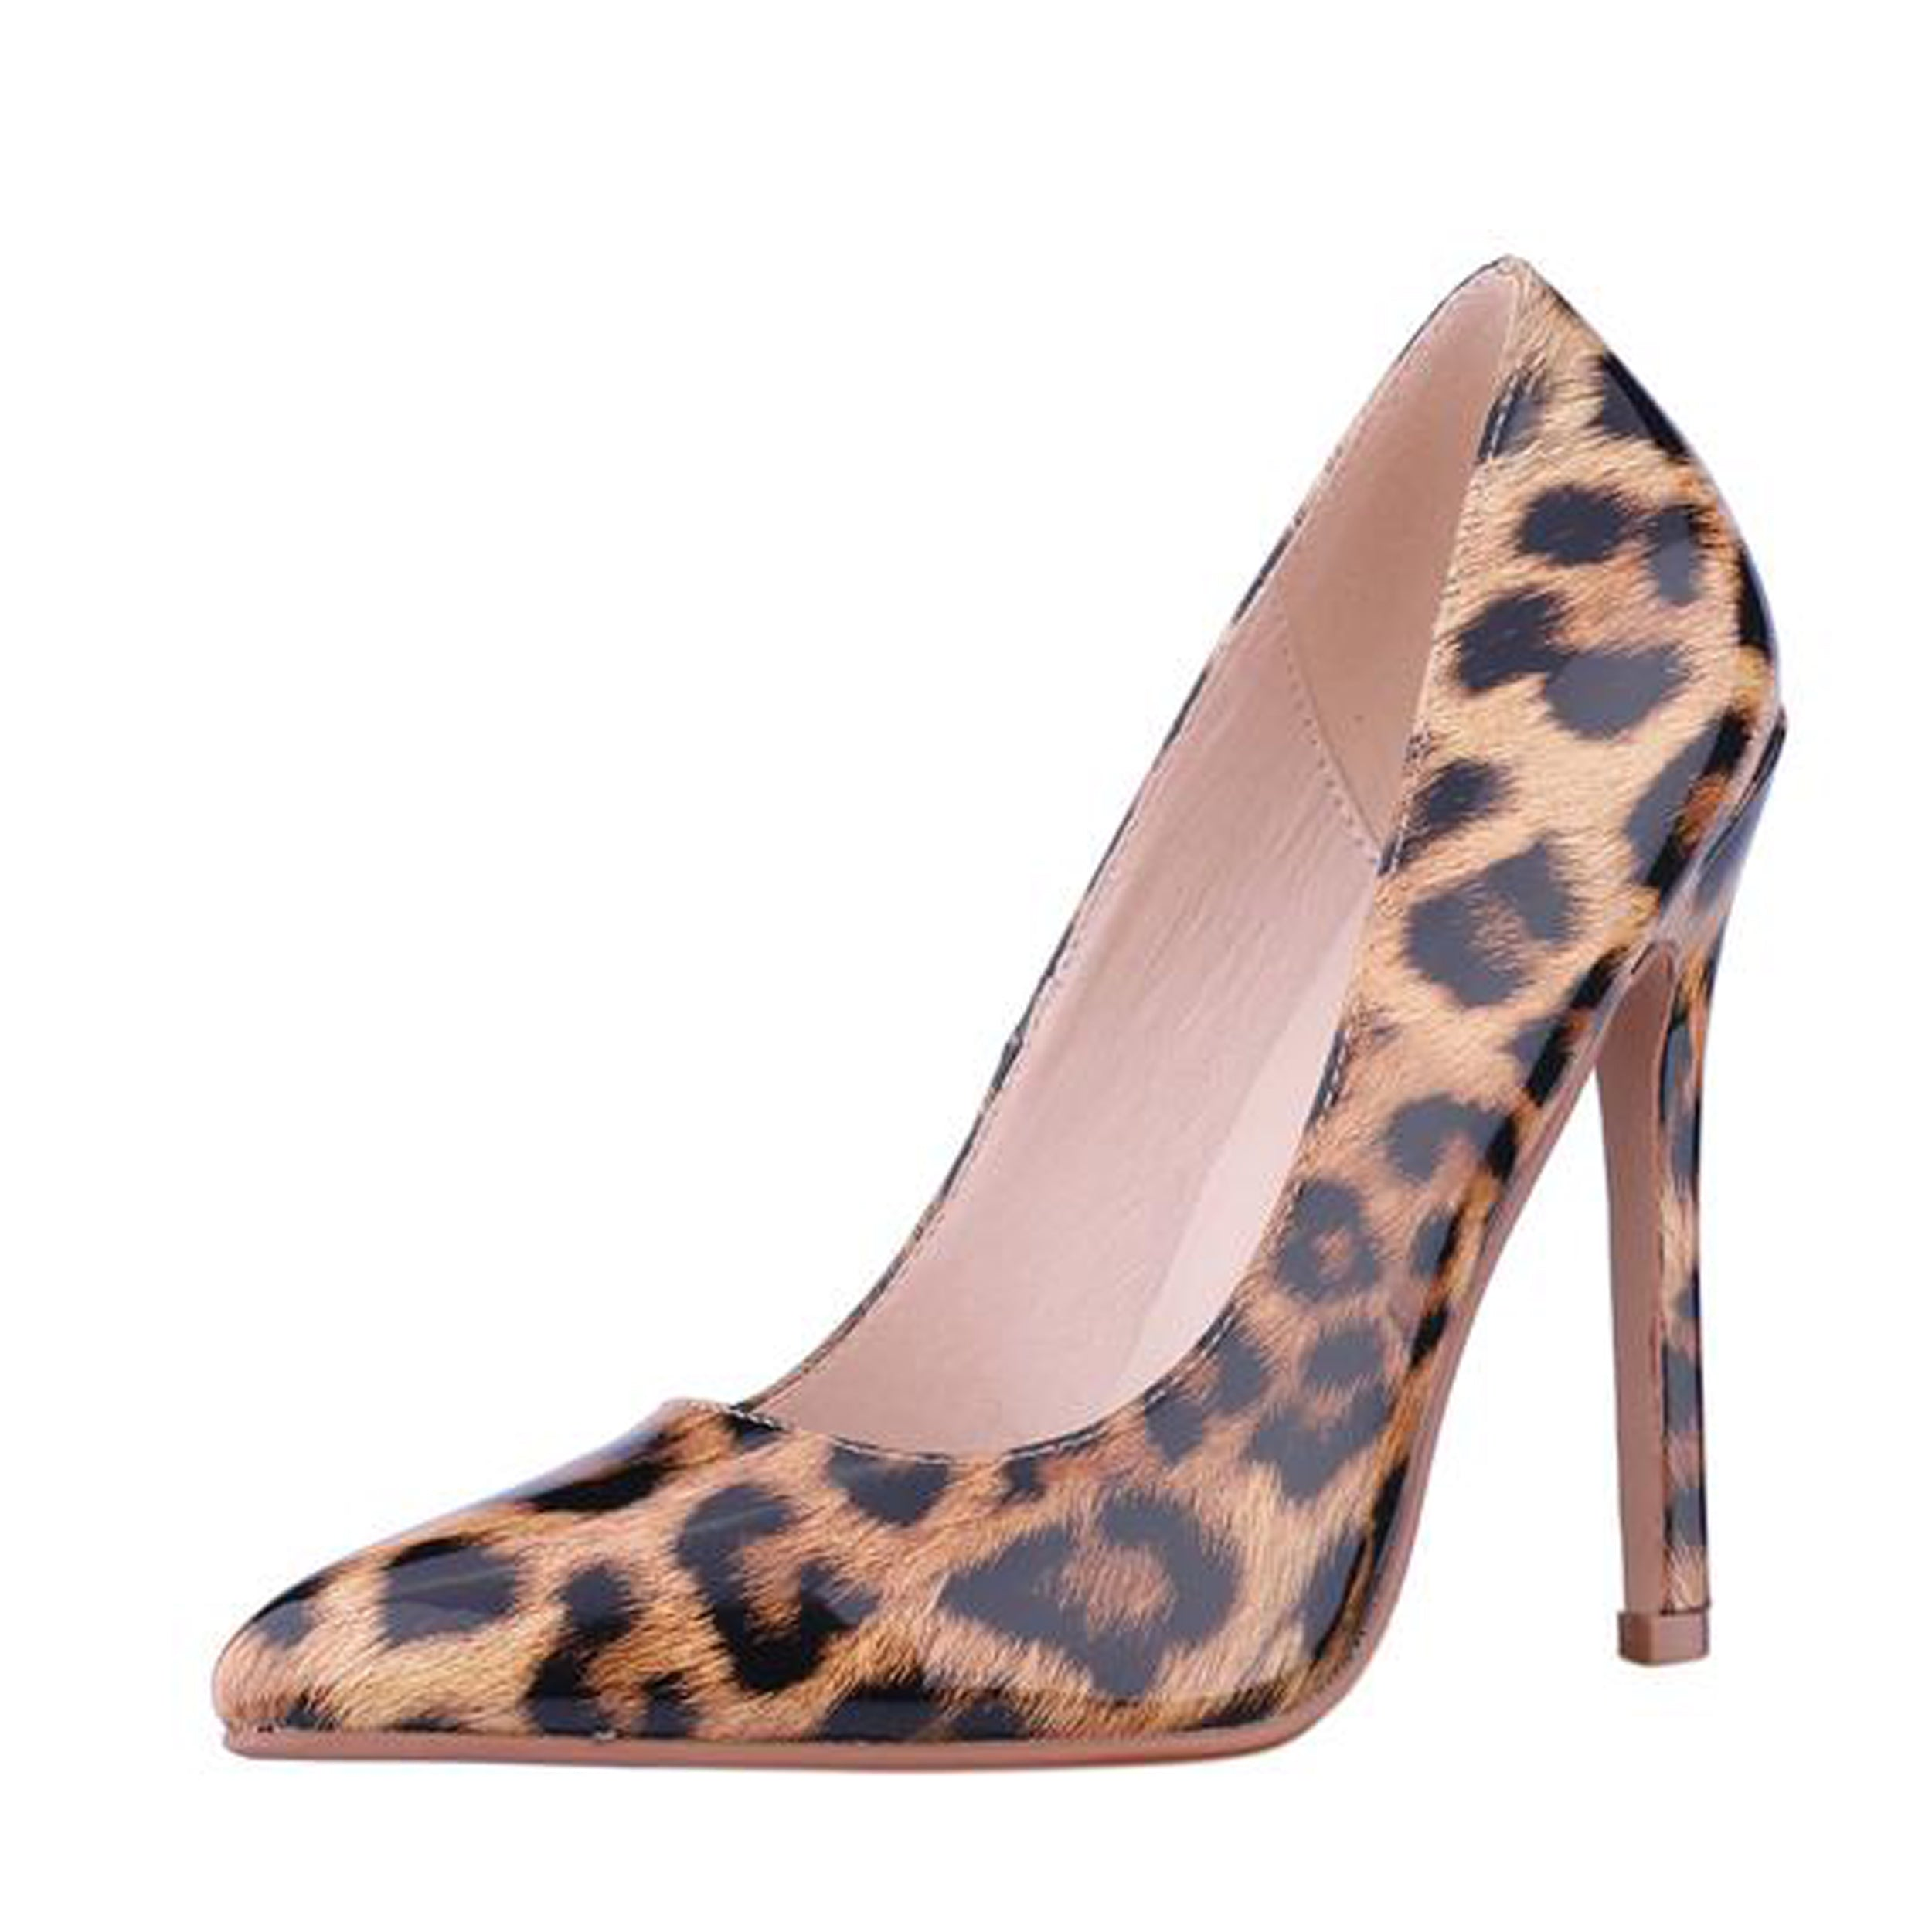 Tiger print stiletto heels